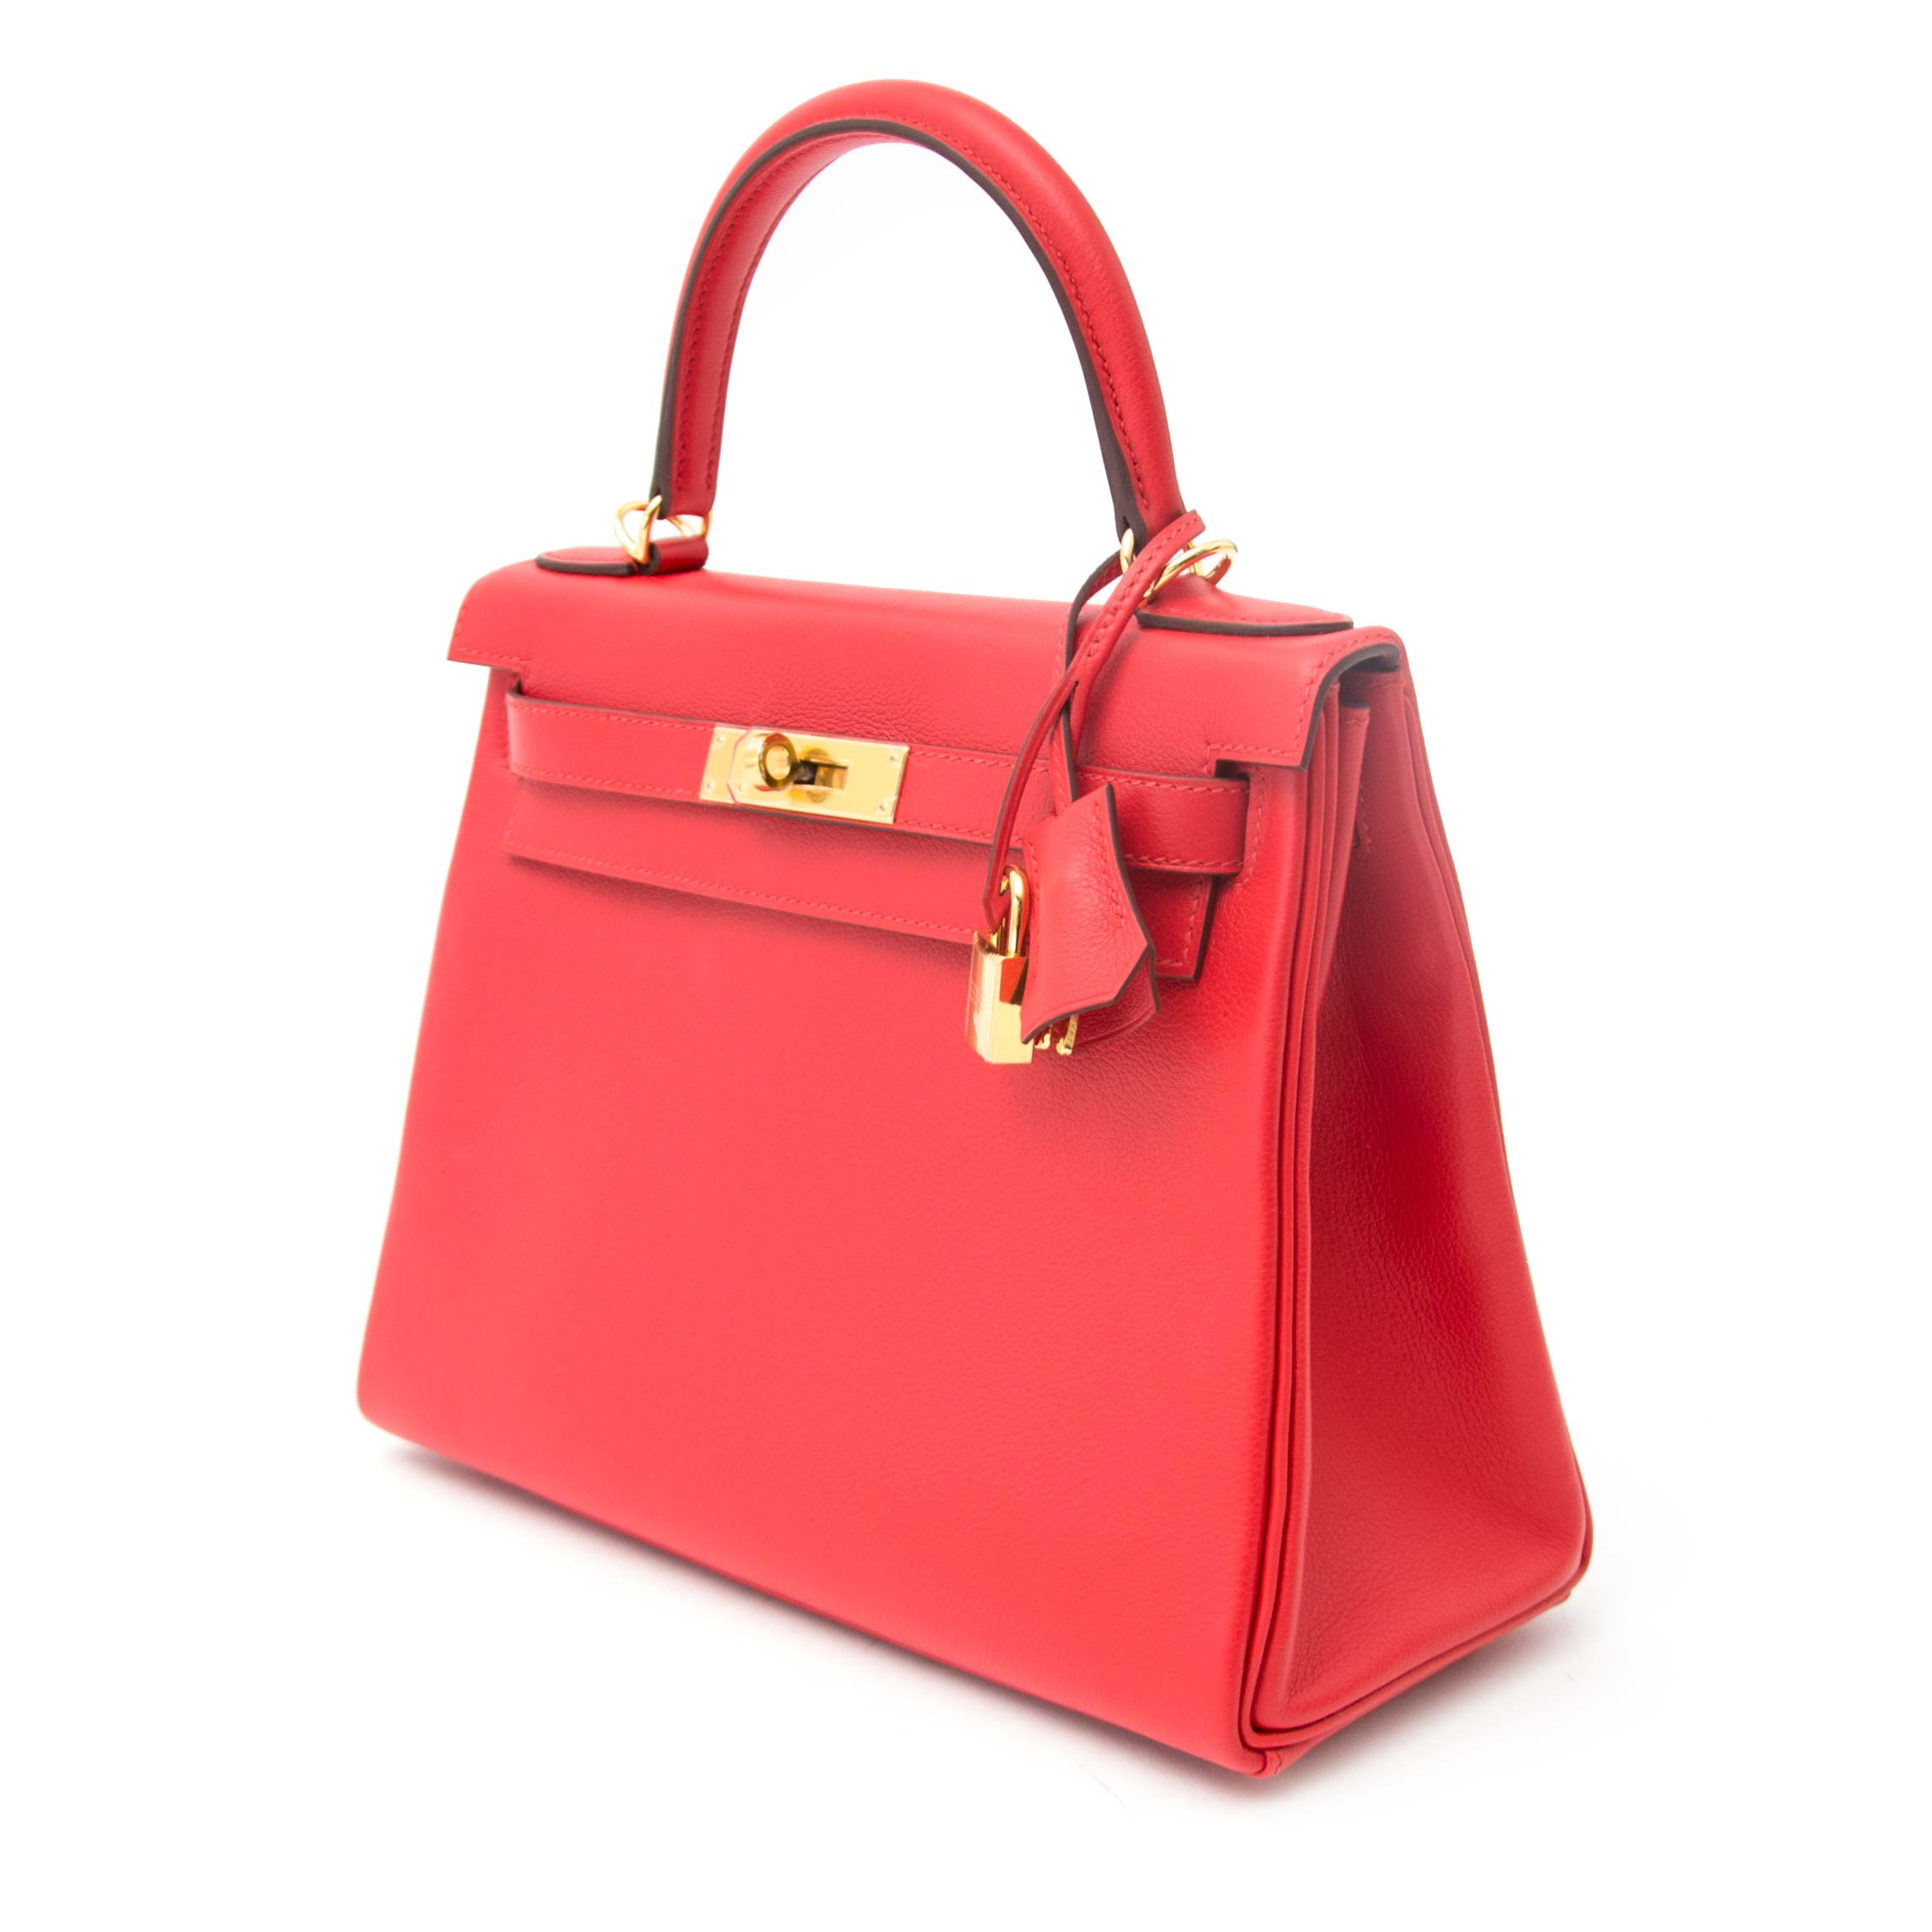 994966c8d48a Hermes Kelly 28 Capucine Evercolor at 1stdibs